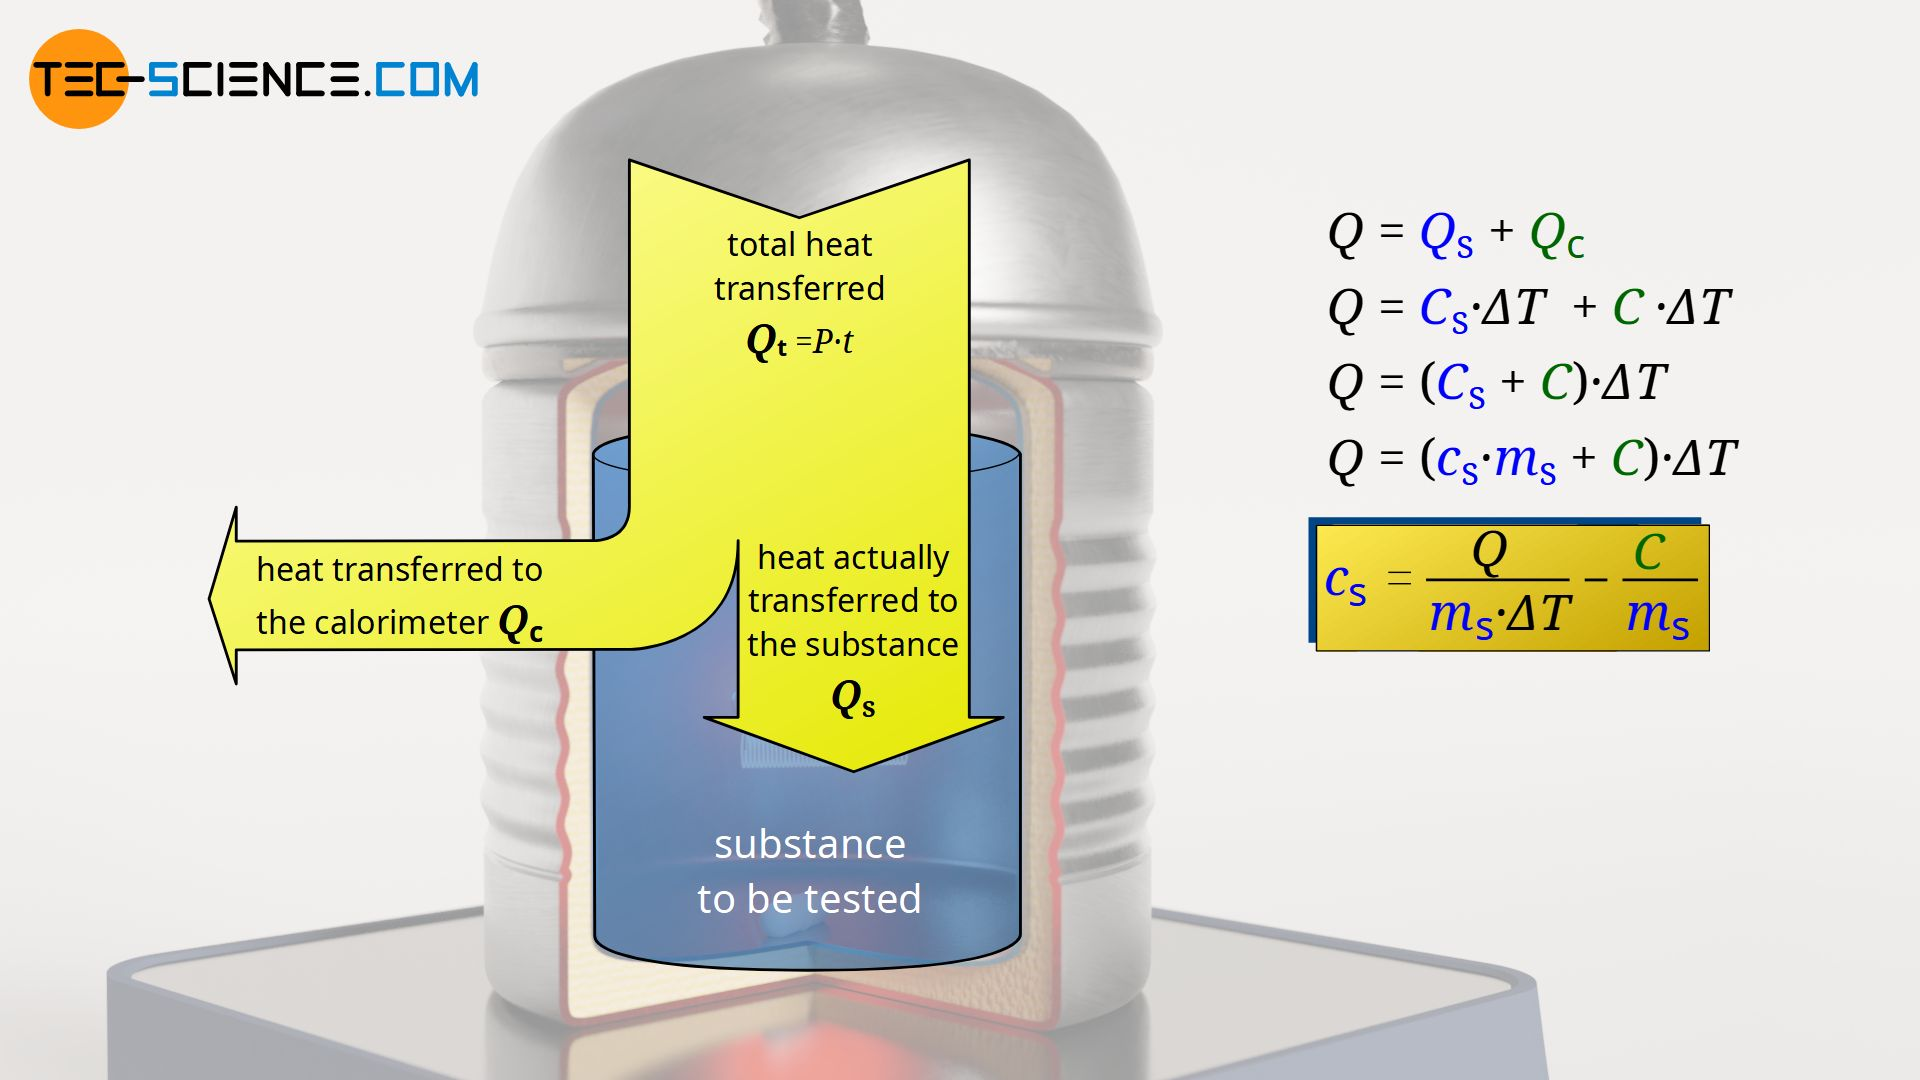 Energy flow diagram of the heat emitted by a heater (water value)